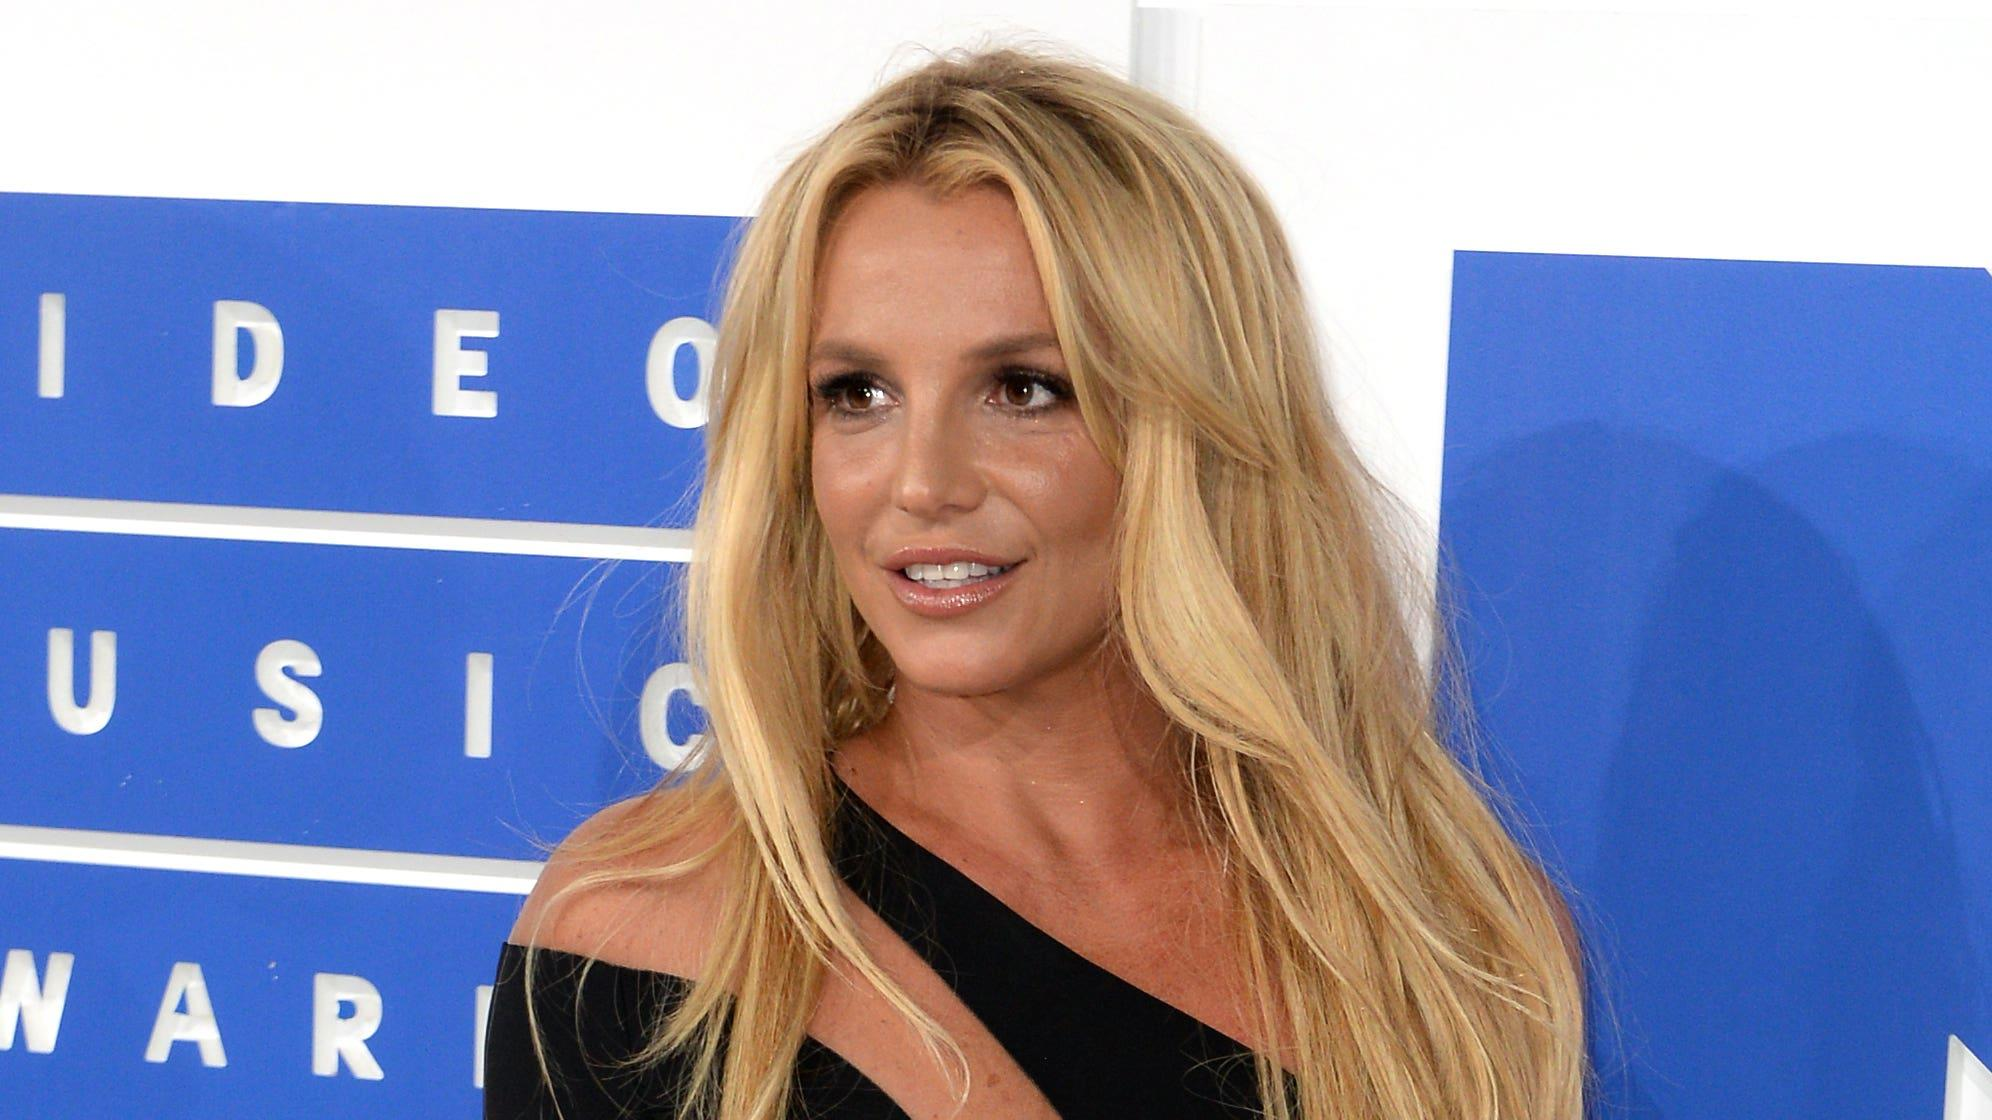 Britney Spears to address US court over her conservatorship